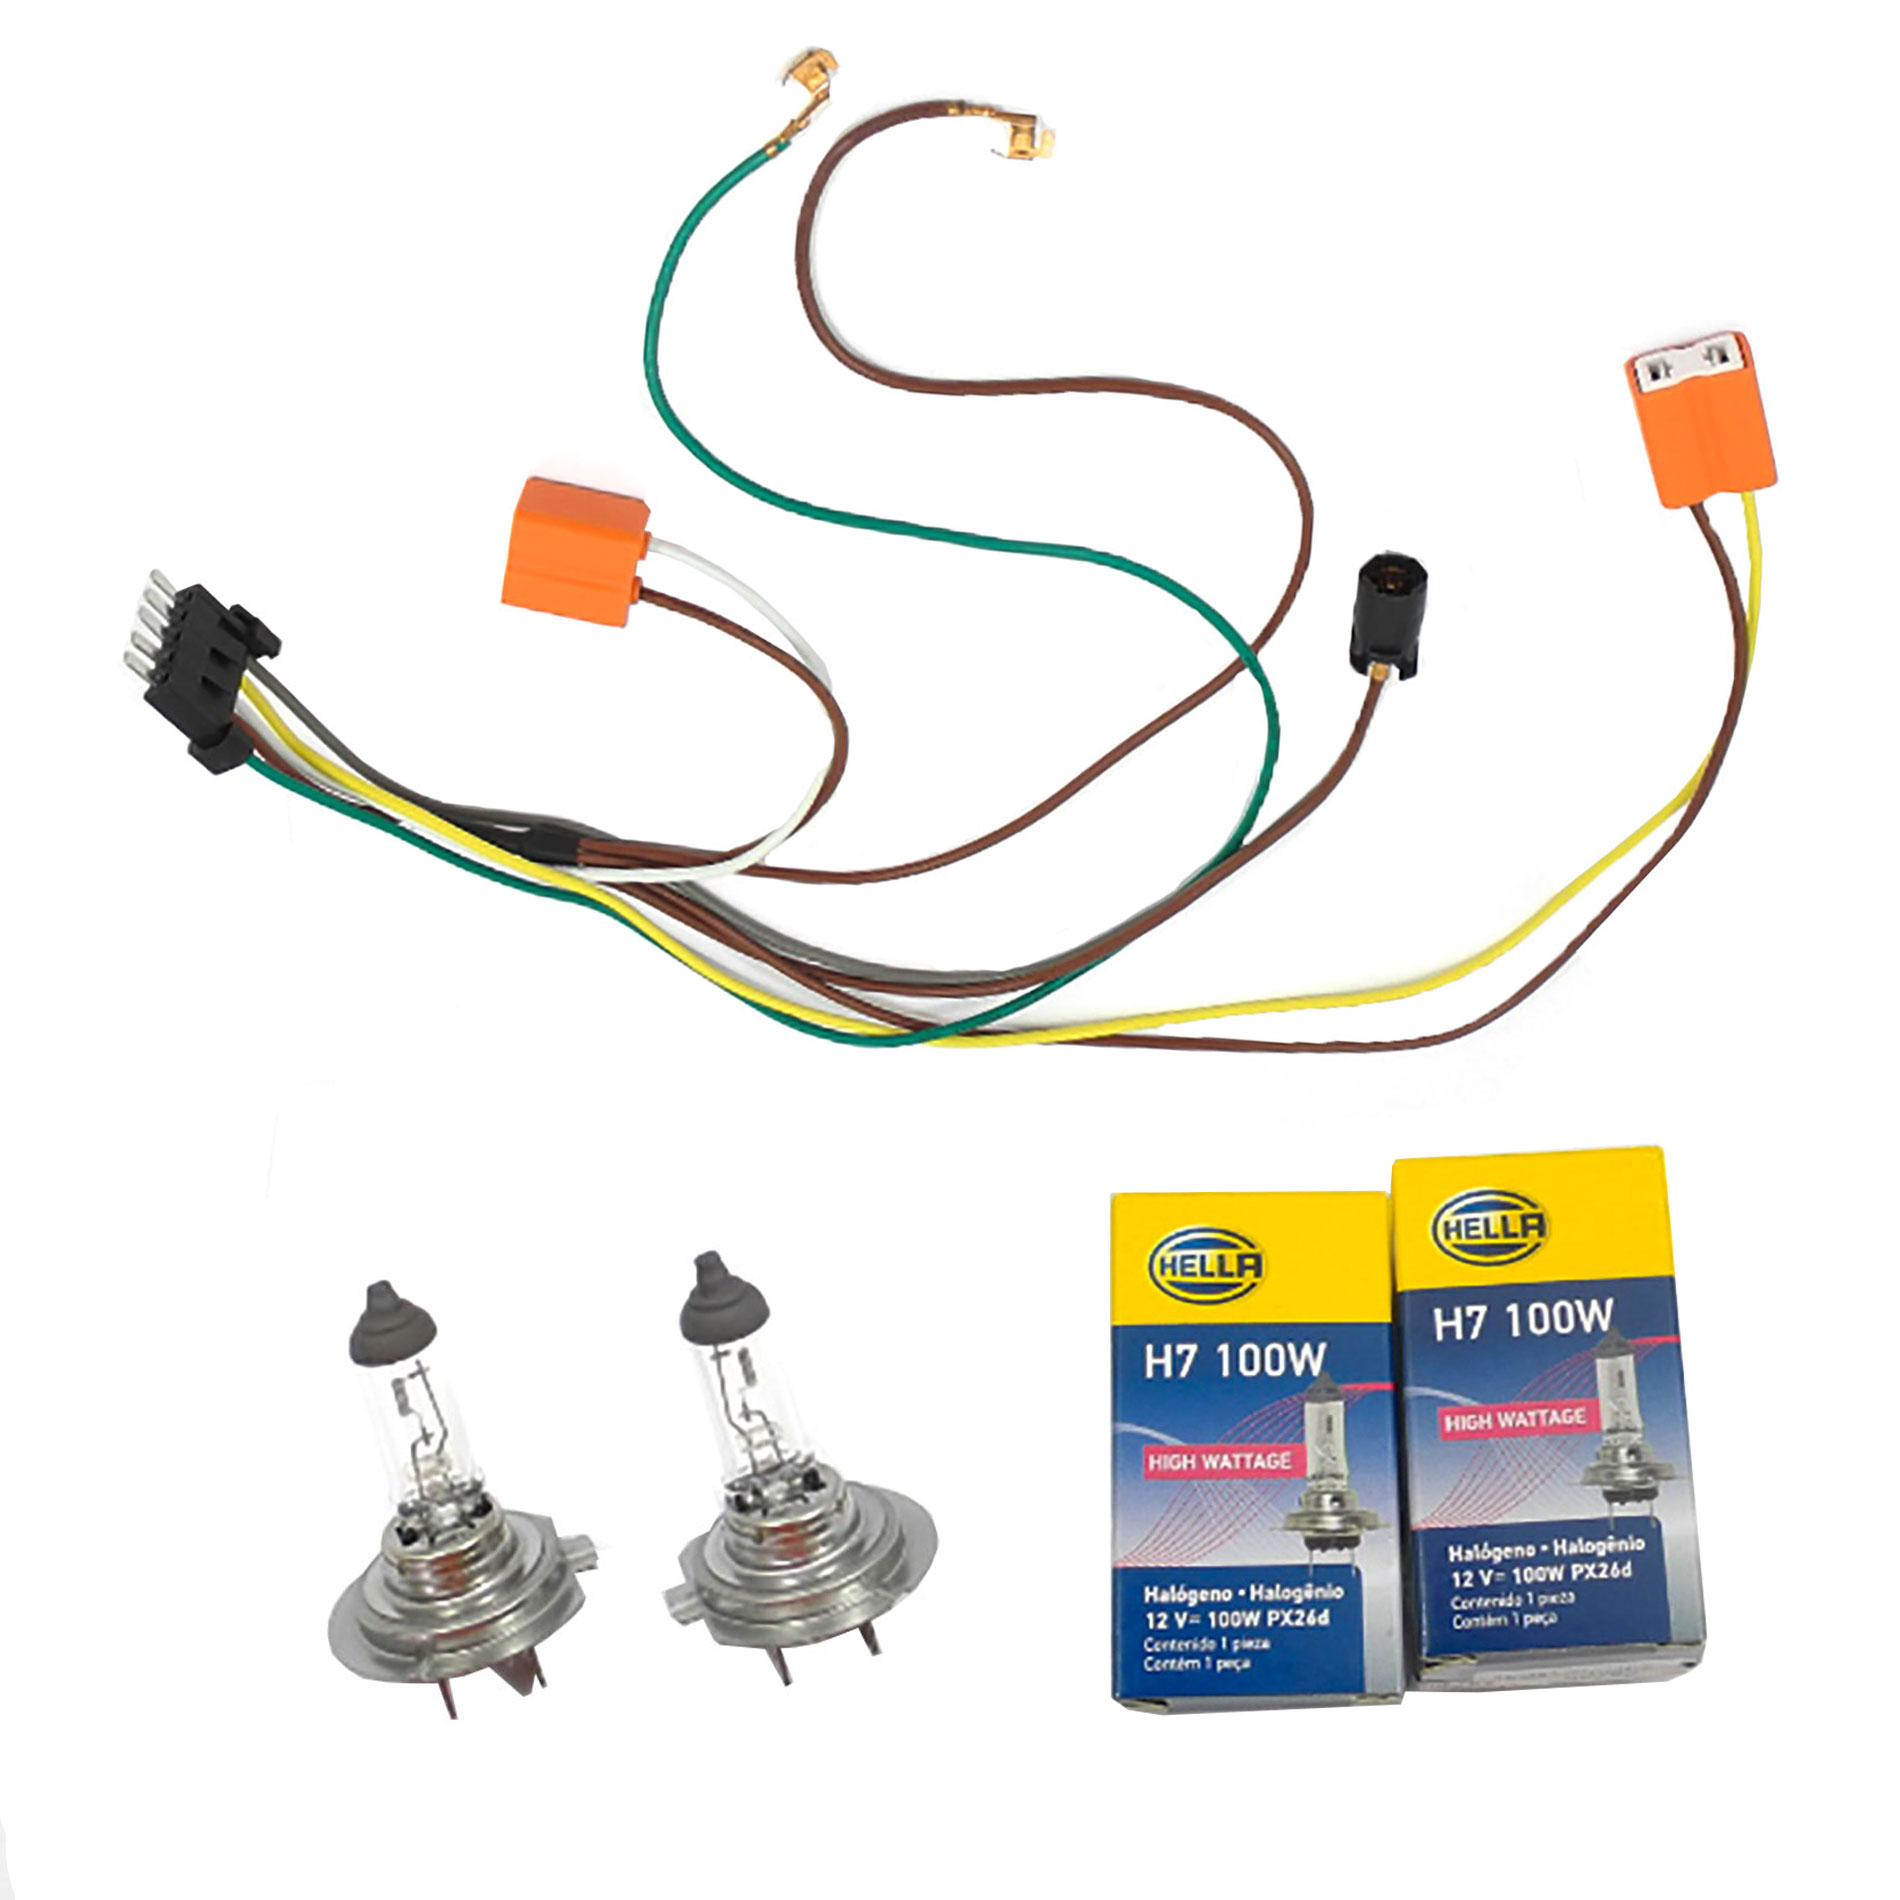 Mercedes C240 Wiring Harness Wire Data Schema C220 Cf Advance For 02 07 Benz C320 C350 C280 C32 Amg C230 Rh Walmart Com 2005